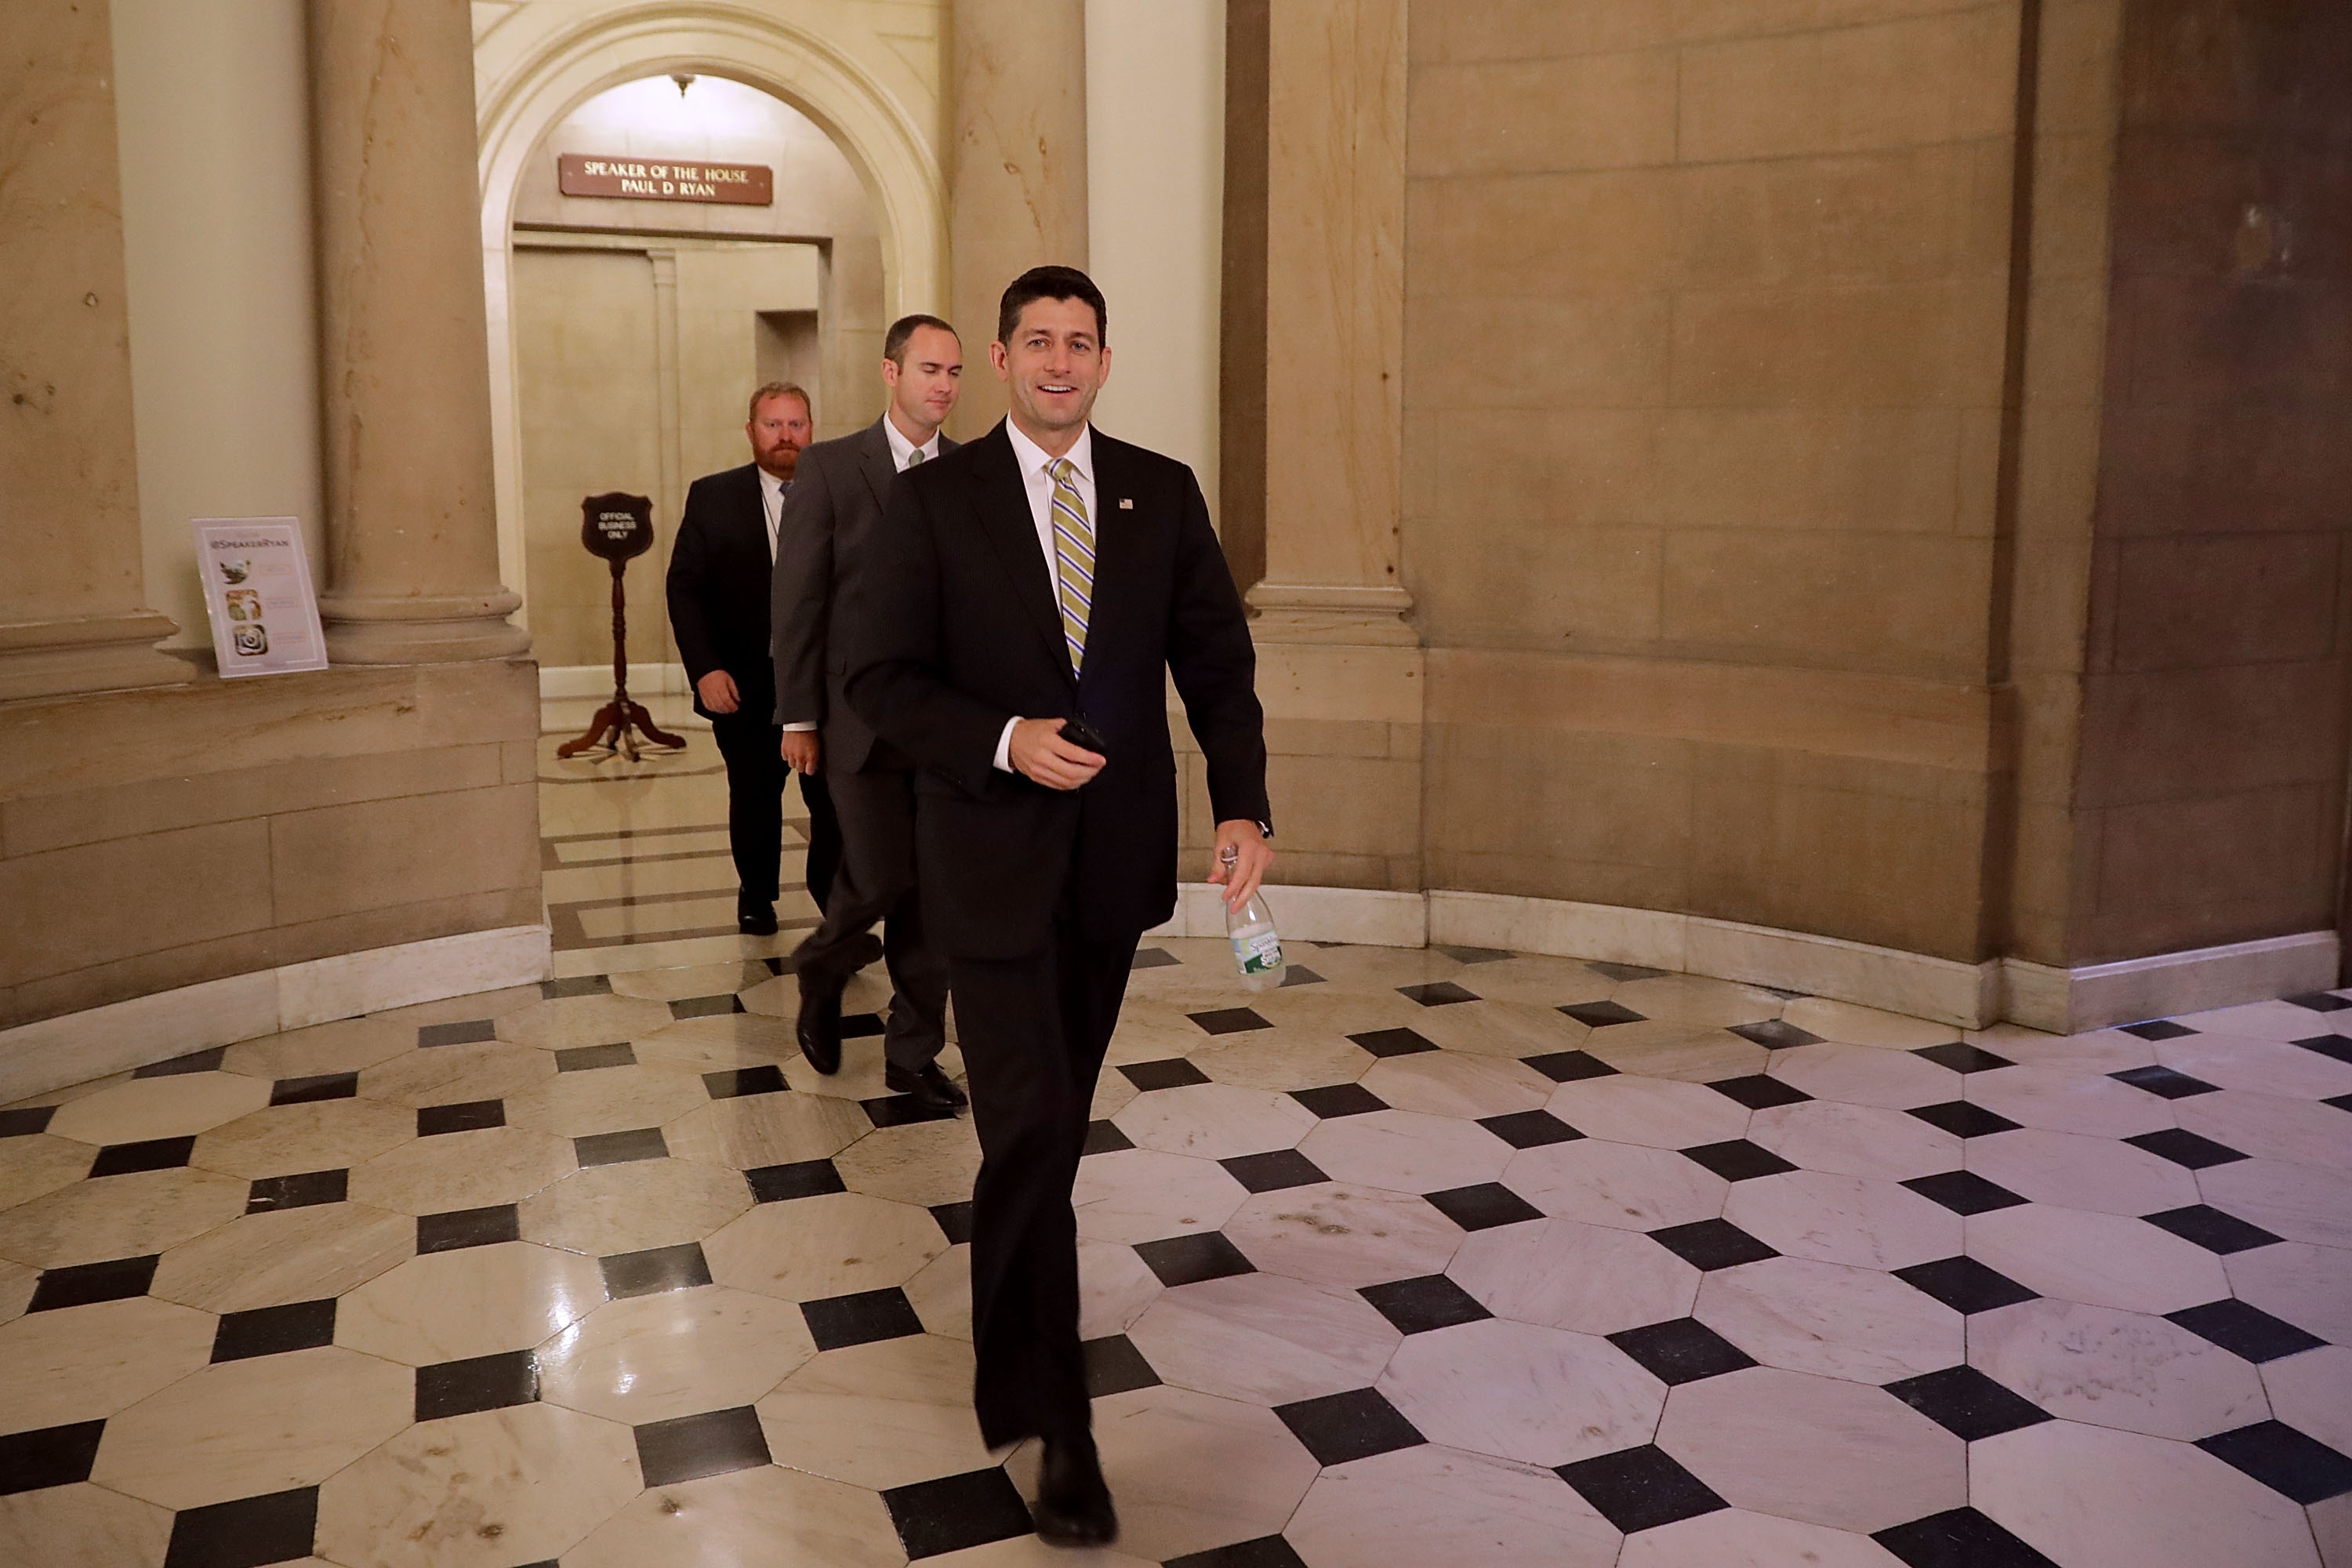 Speaker of the House Paul Ryan leaves his office at the U.S. Capitol July 27, 2017 in Washington, DC. Chip Somodevilla/Getty Images